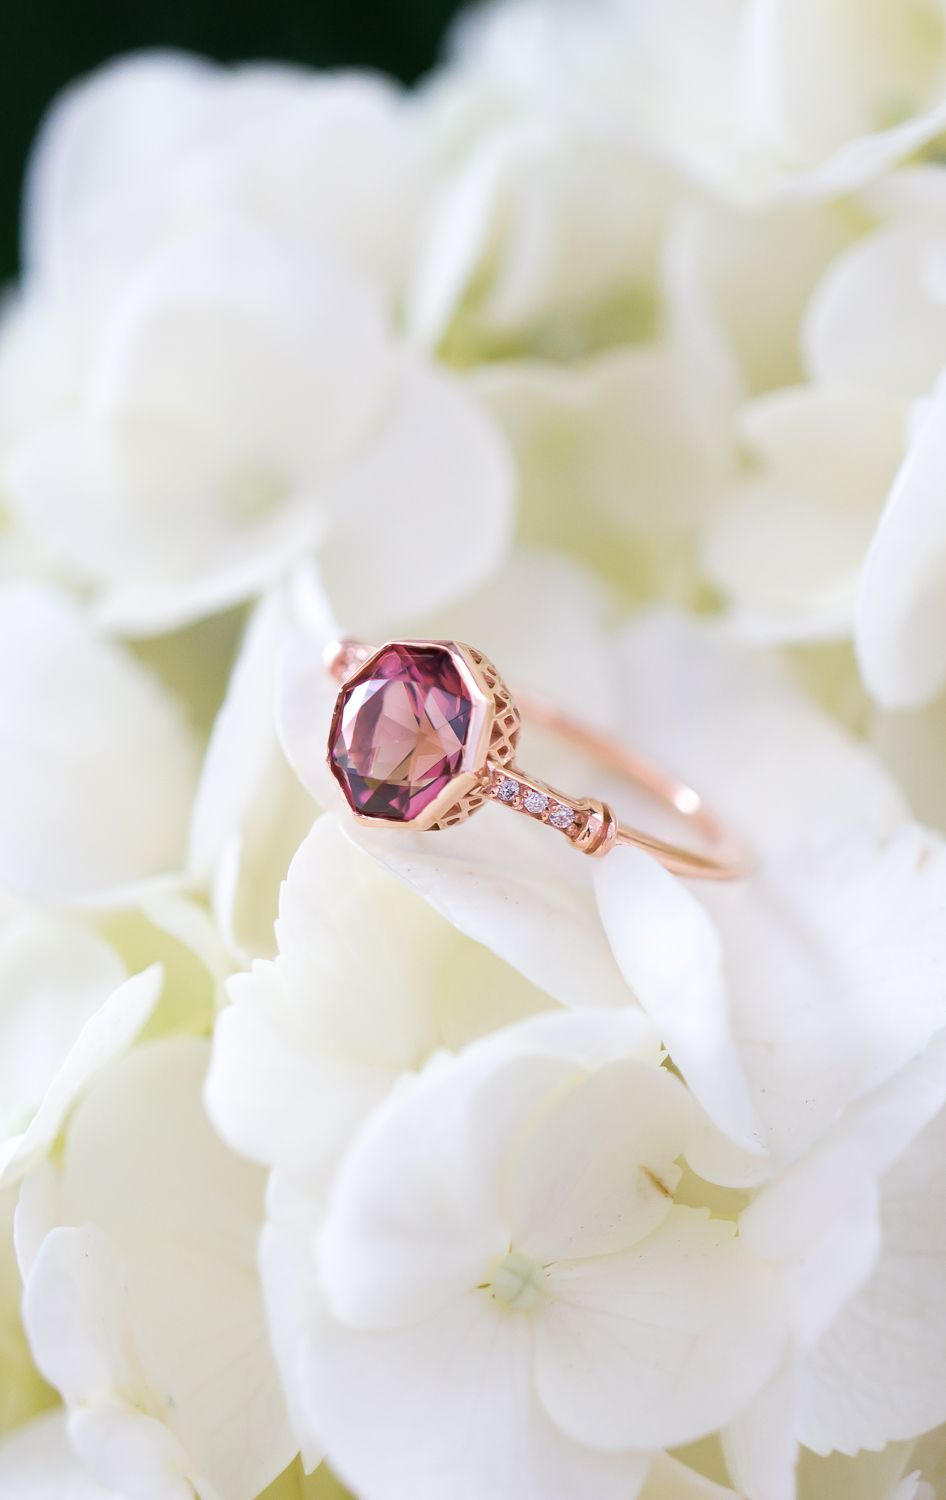 Antique style open-work Pink Tourmaline Engagement Ring in Recycled ...